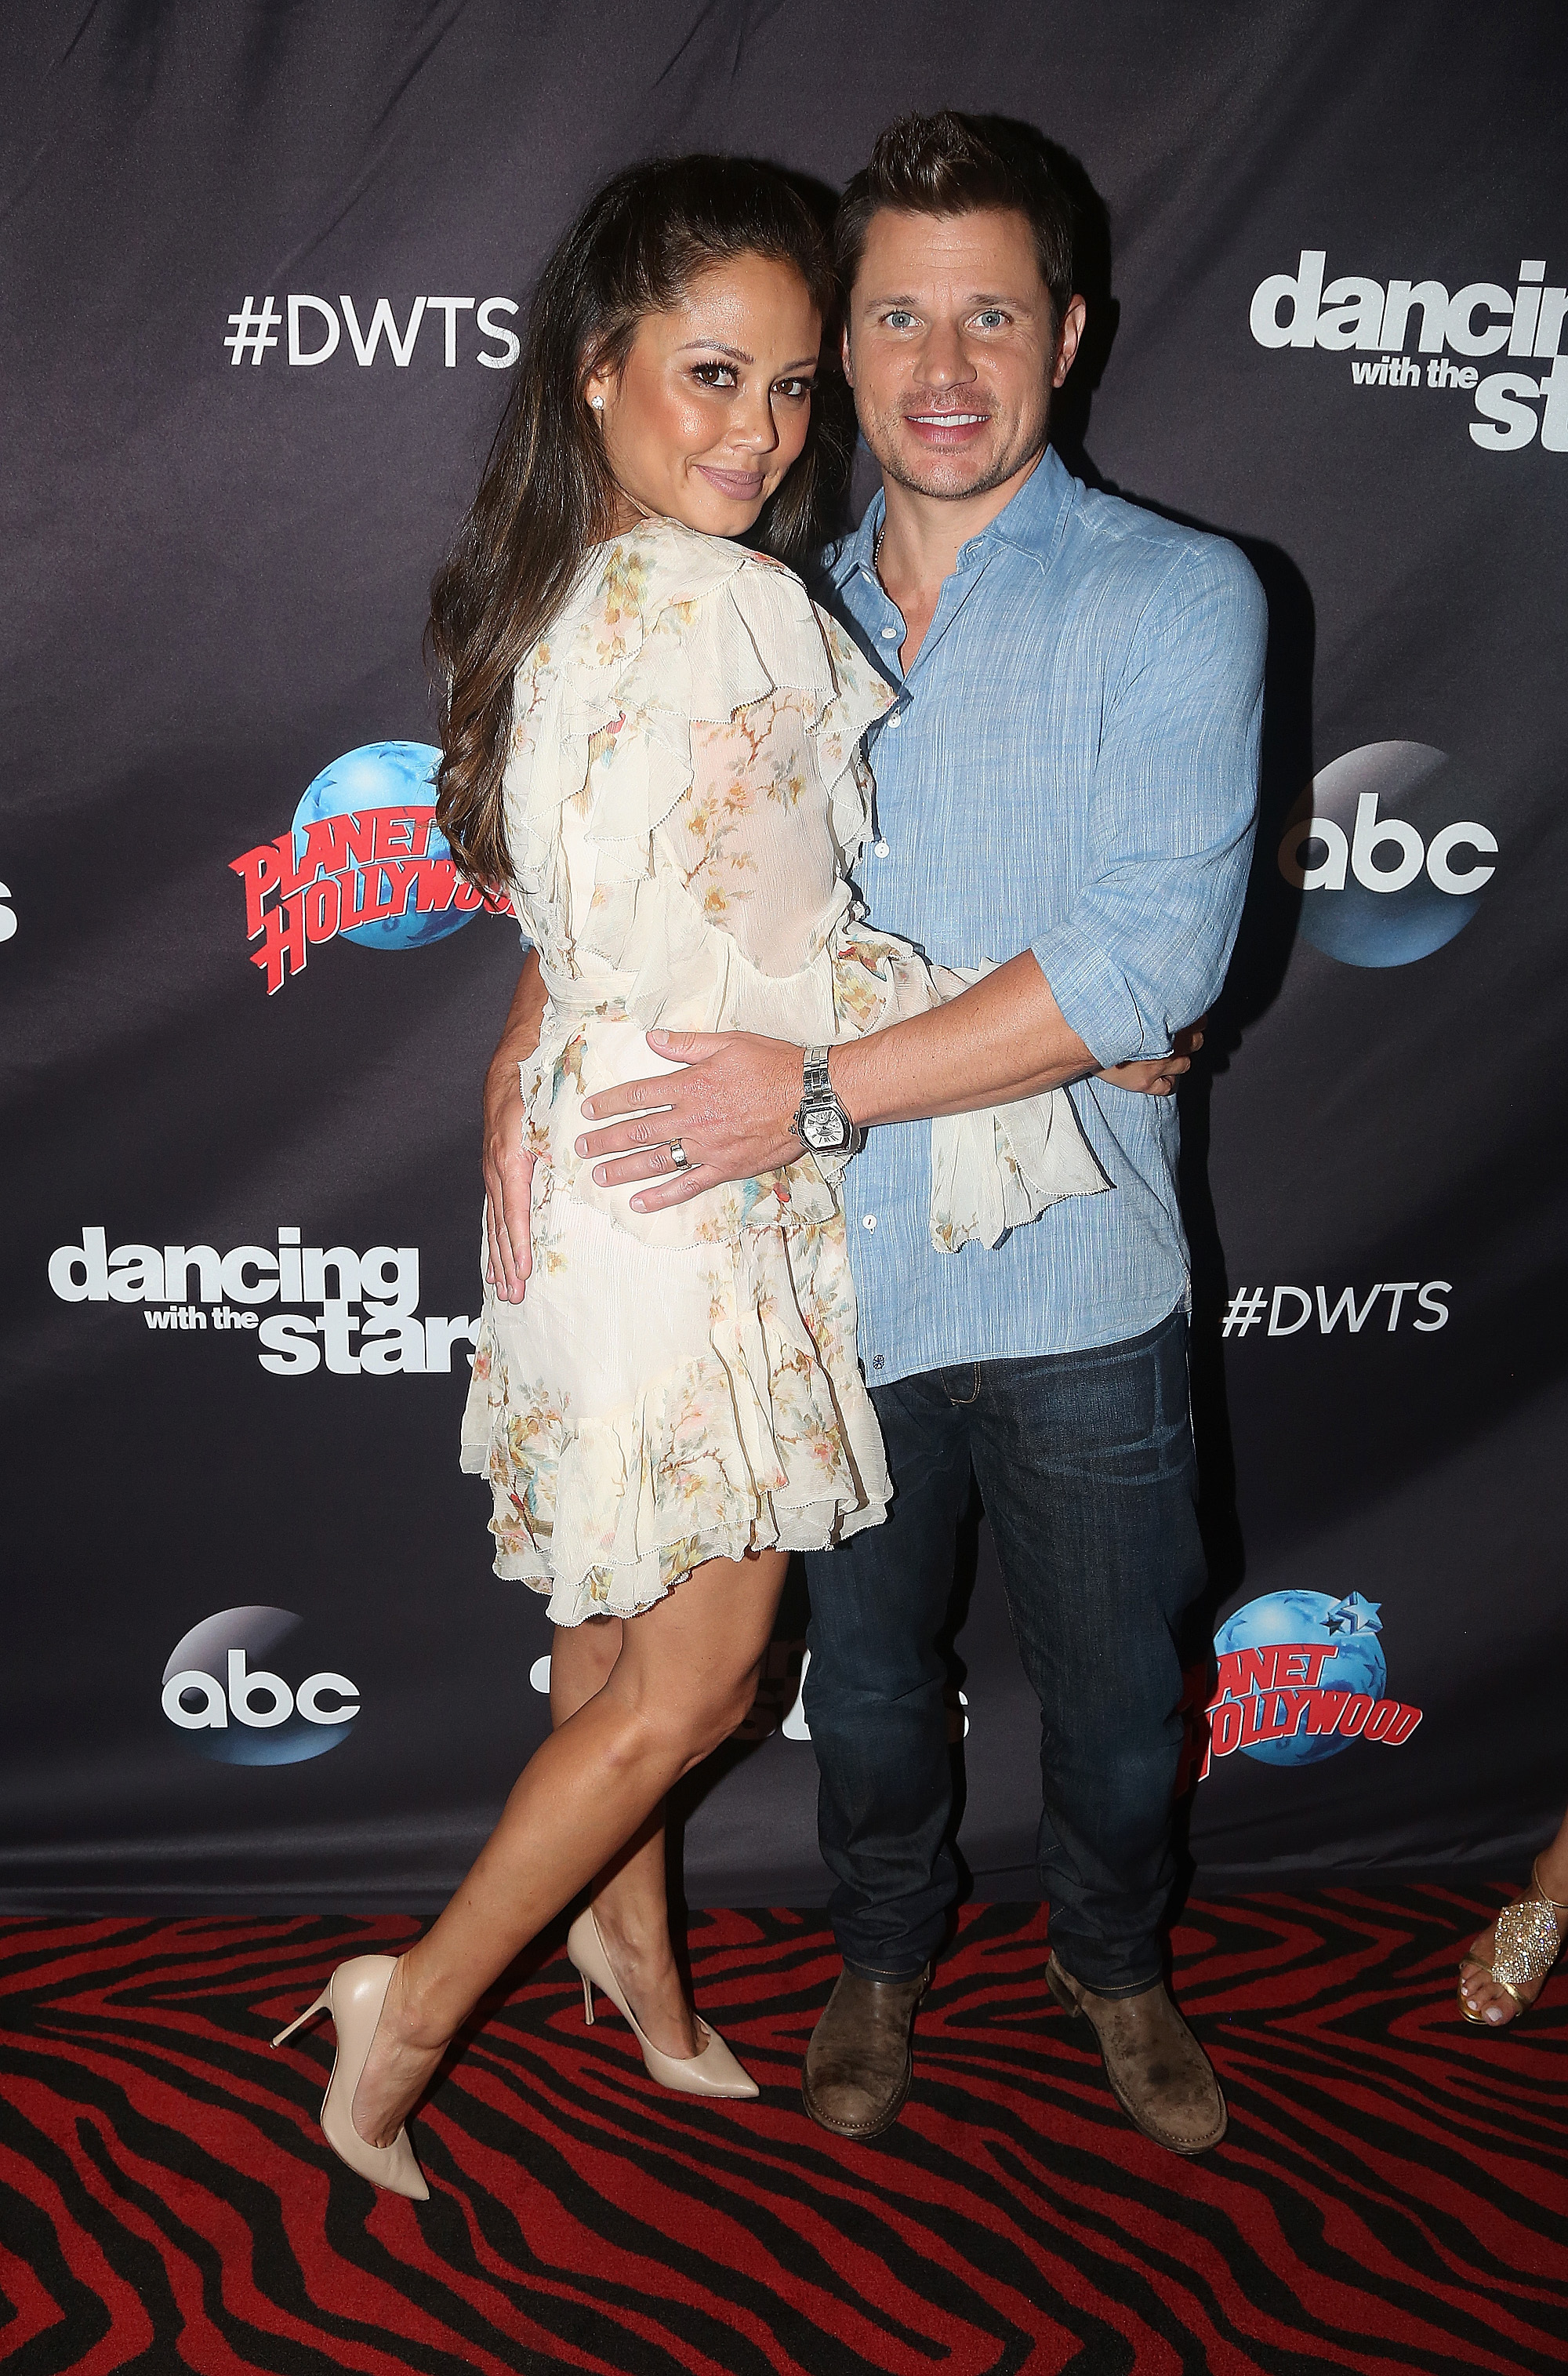 """Vanessa Lachey and Nick Lachey pose at ABC's """"Dancing with the Stars"""" Season 5 cast announcement event in New York City on Sept. 6, 2017."""